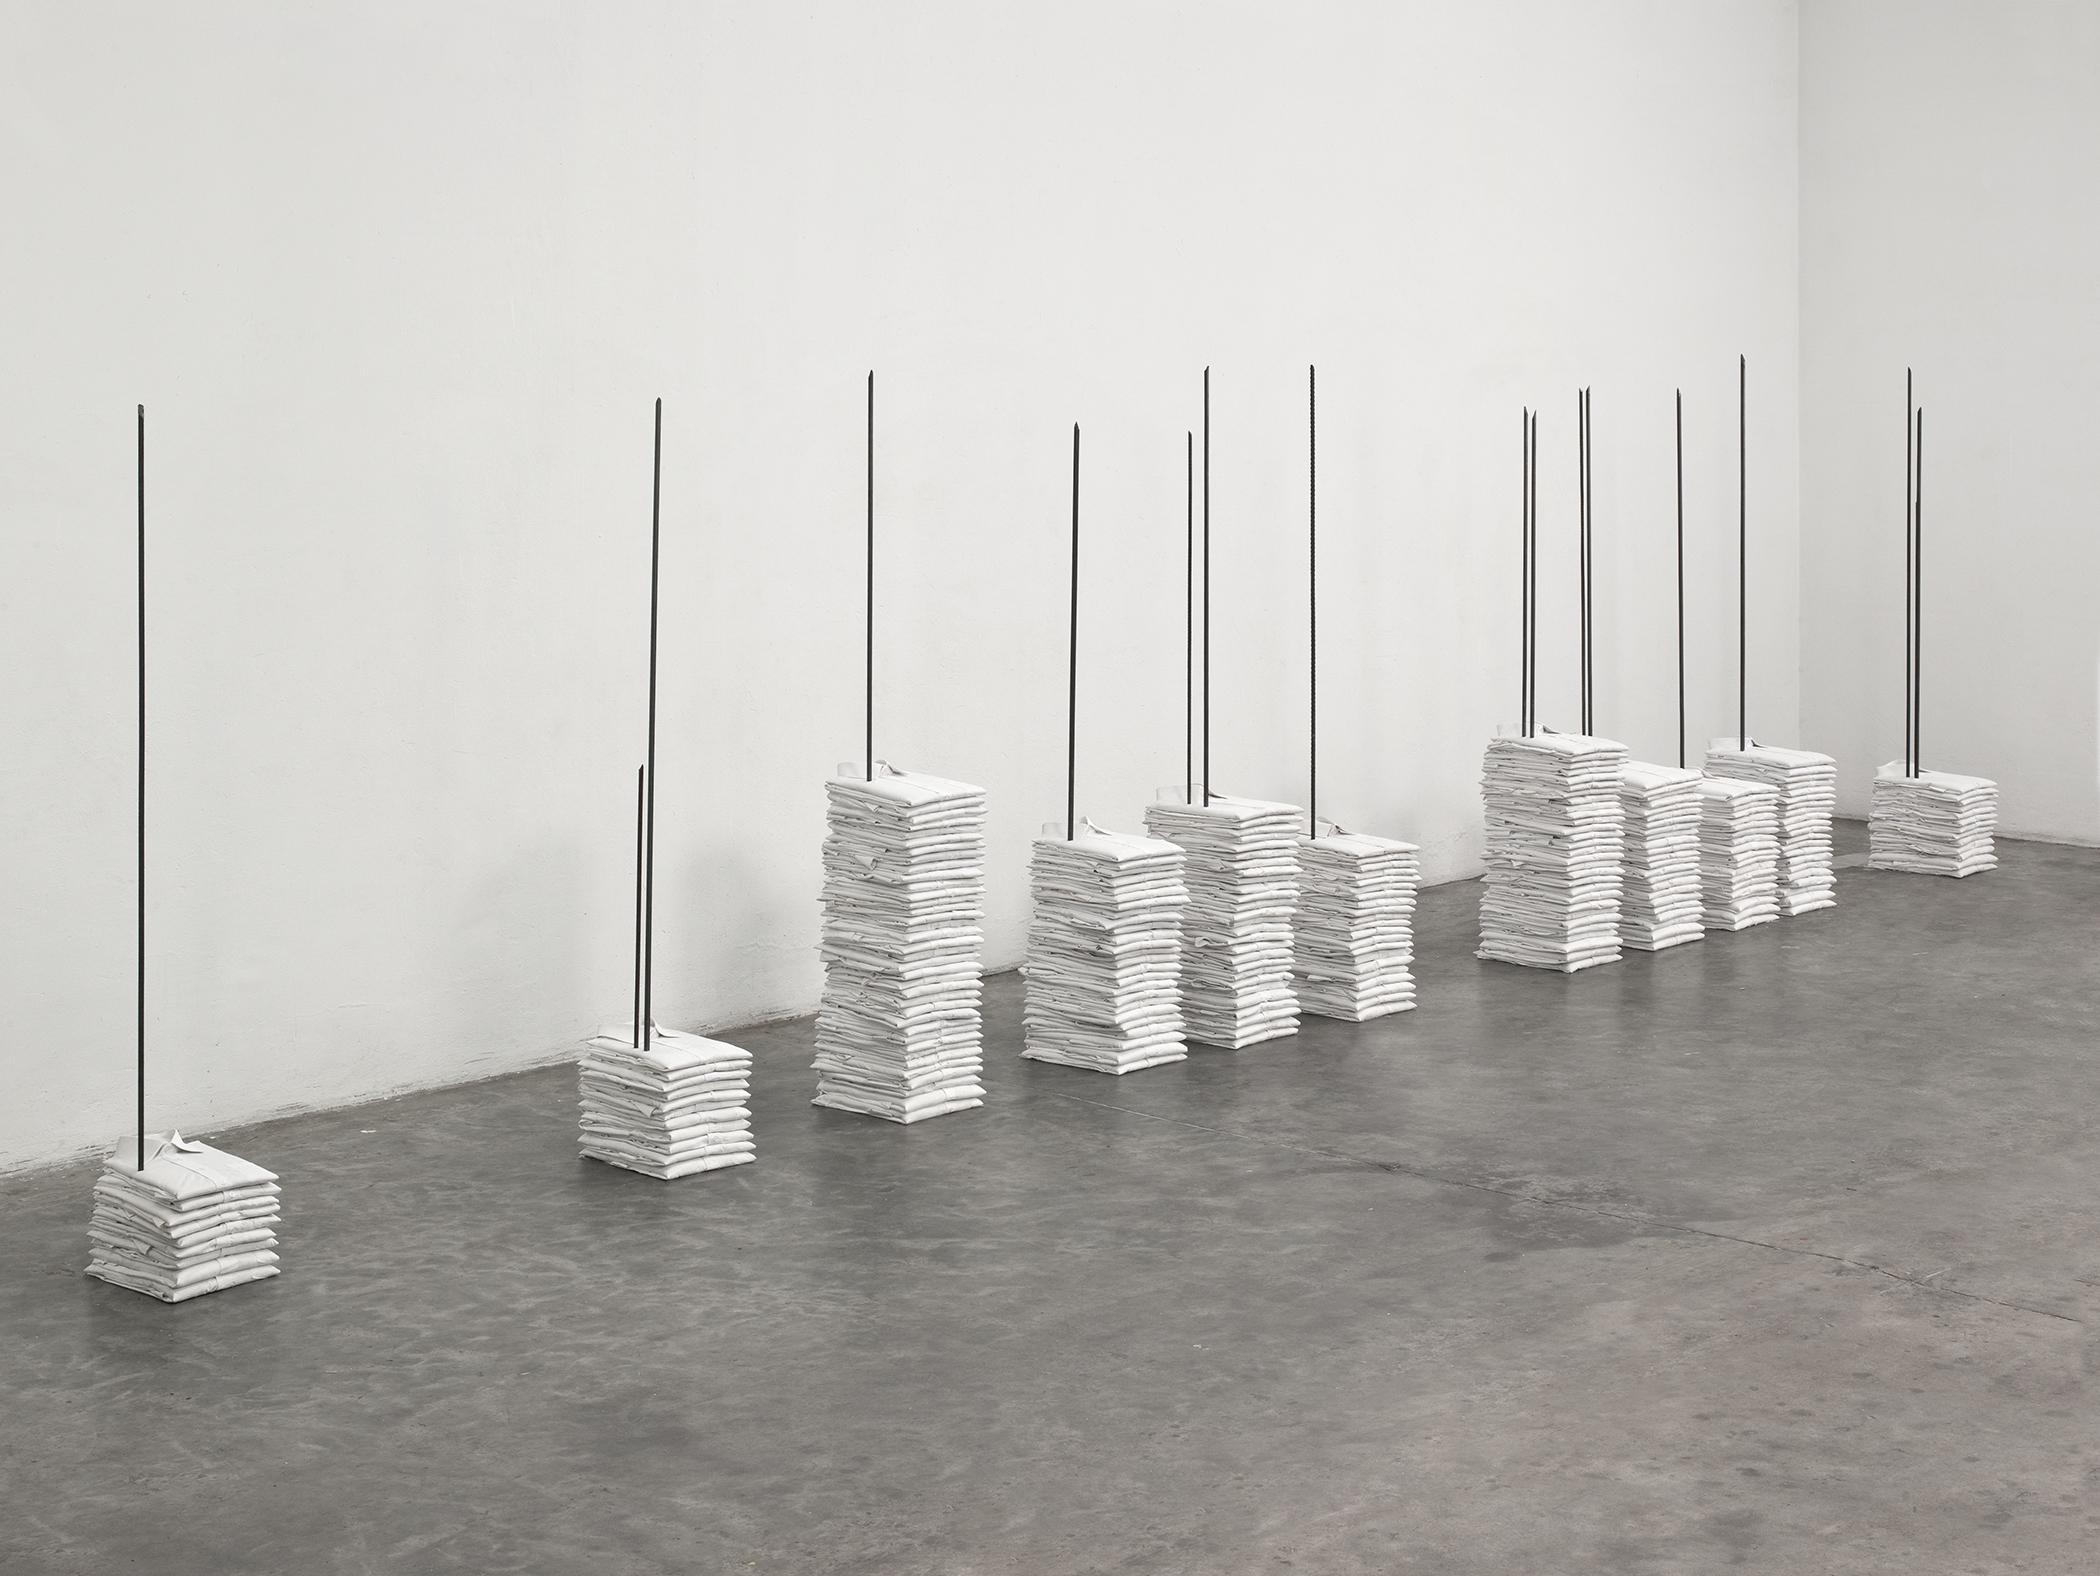 A sculpture shows several stacks of folded white polo shirts that are pierced by metal rods sticking out of the floor.